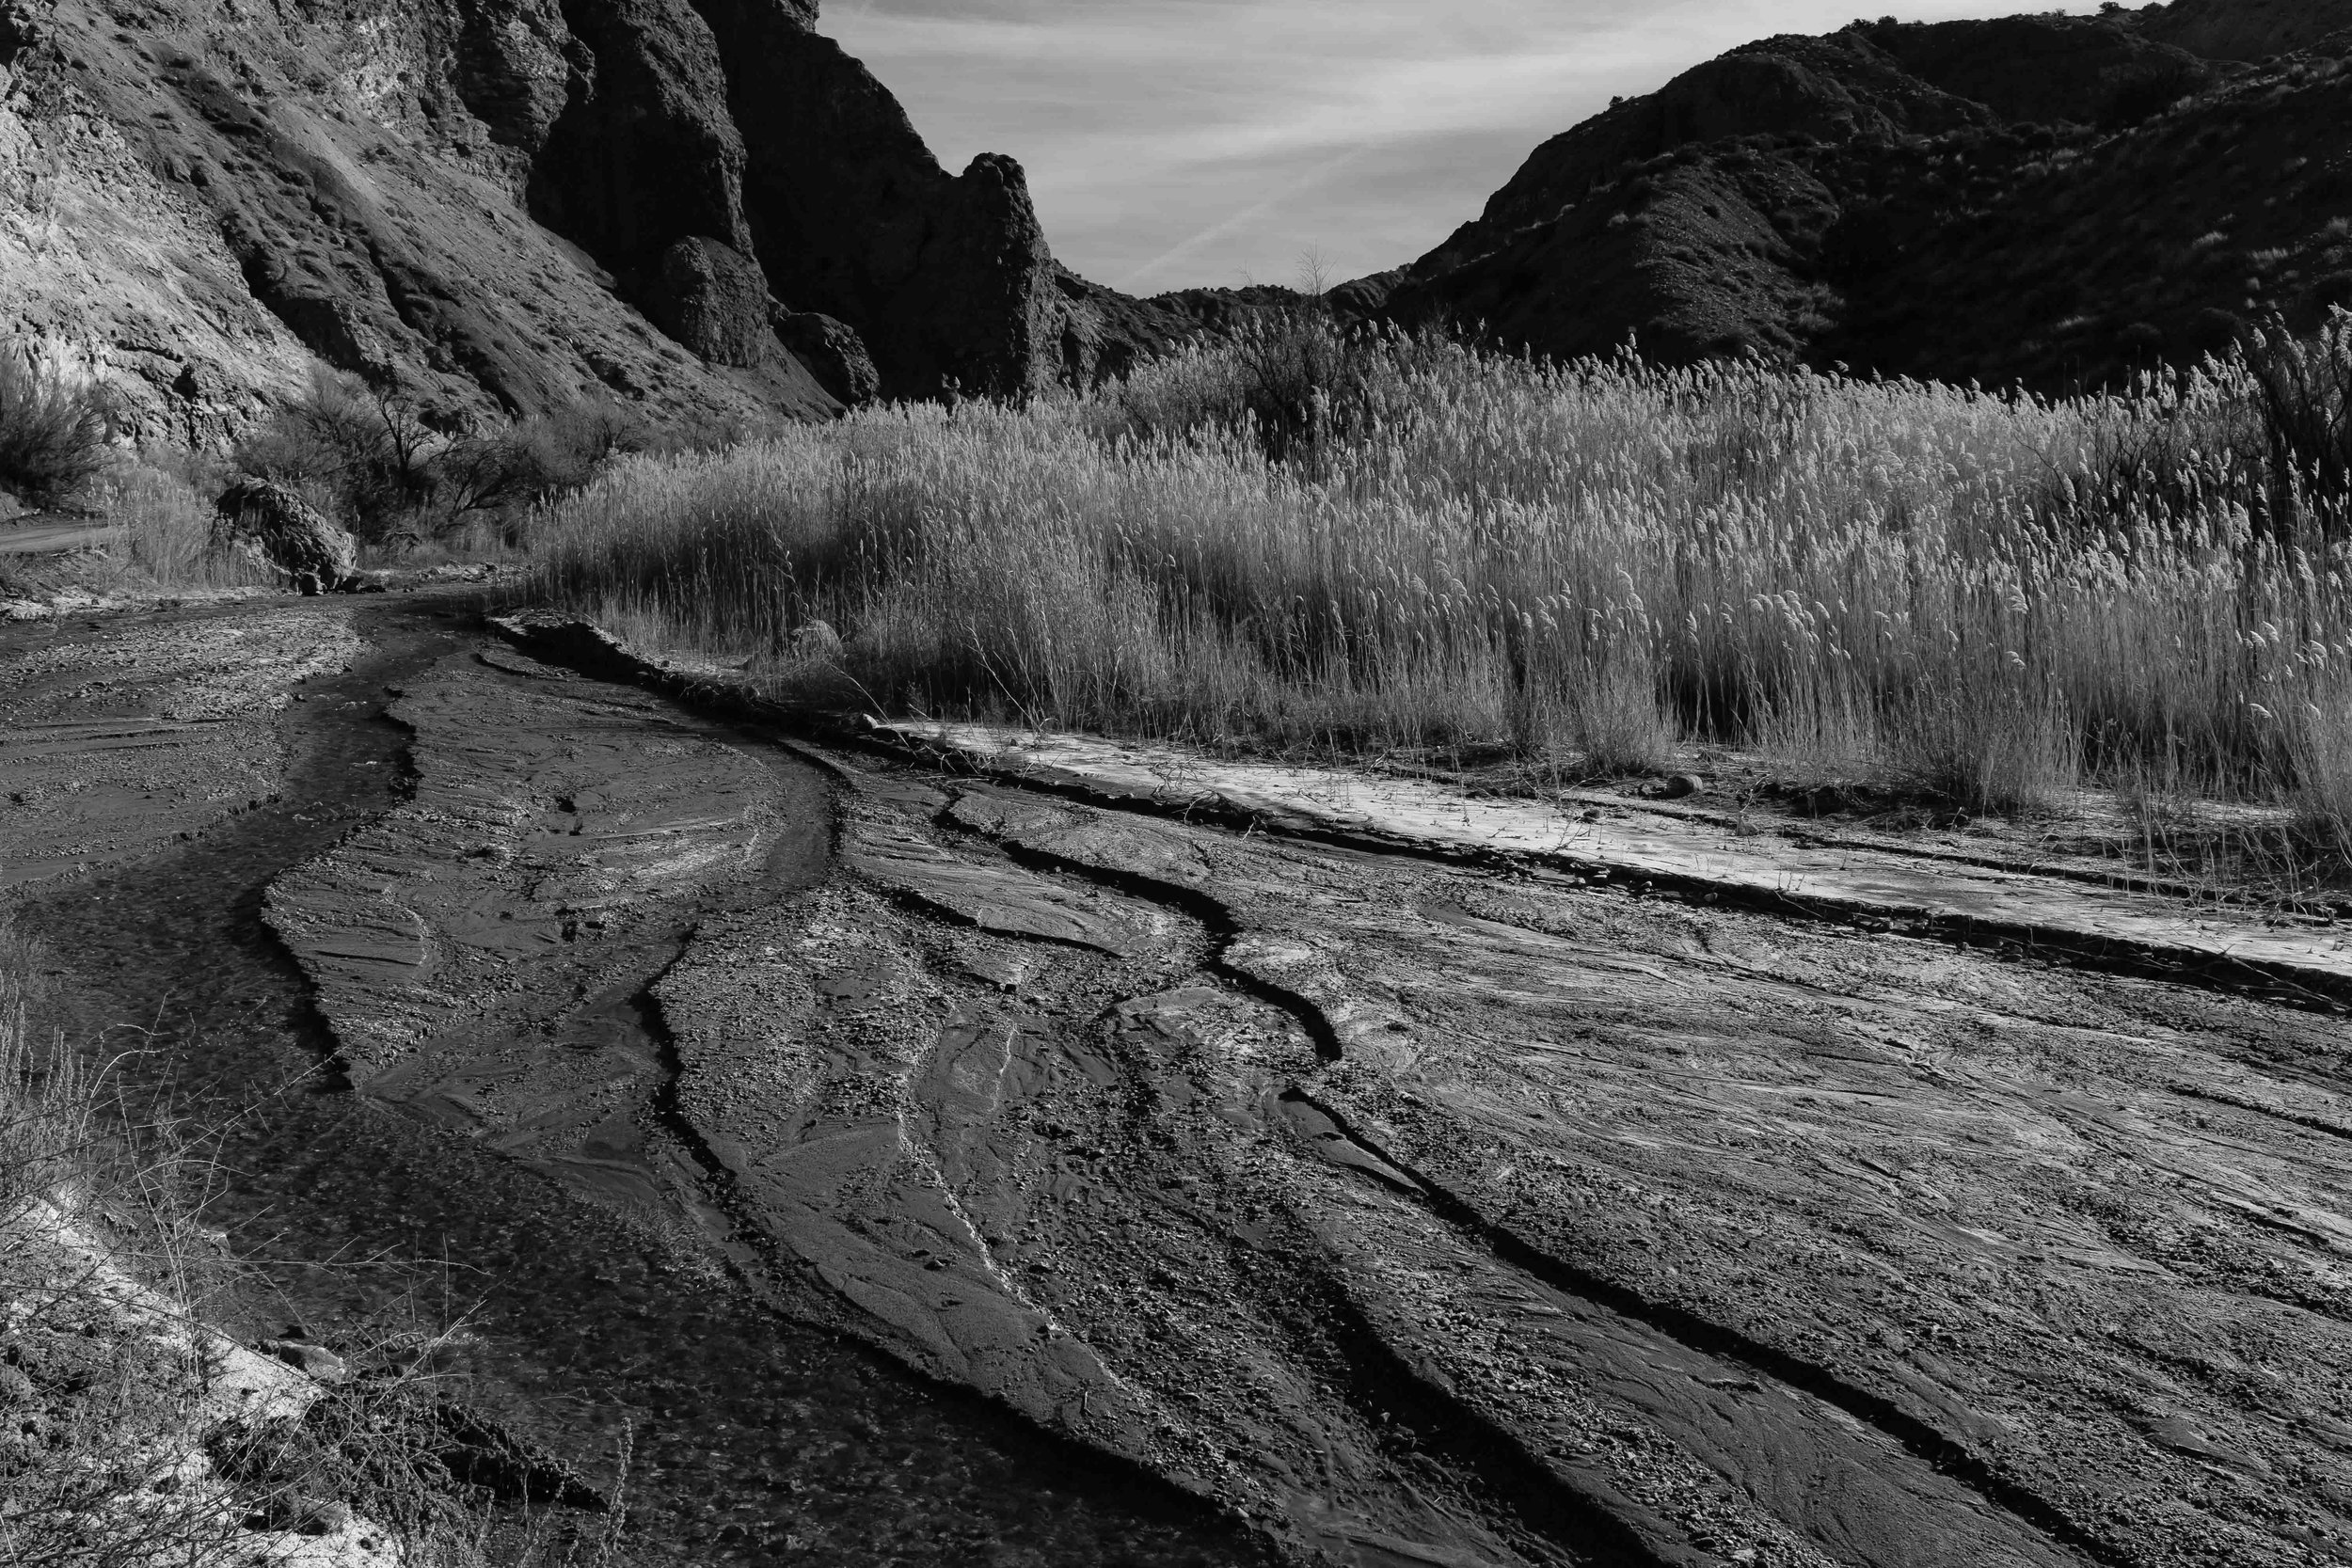 The textures of the creek make for interesting black and white images. Fuji X100F